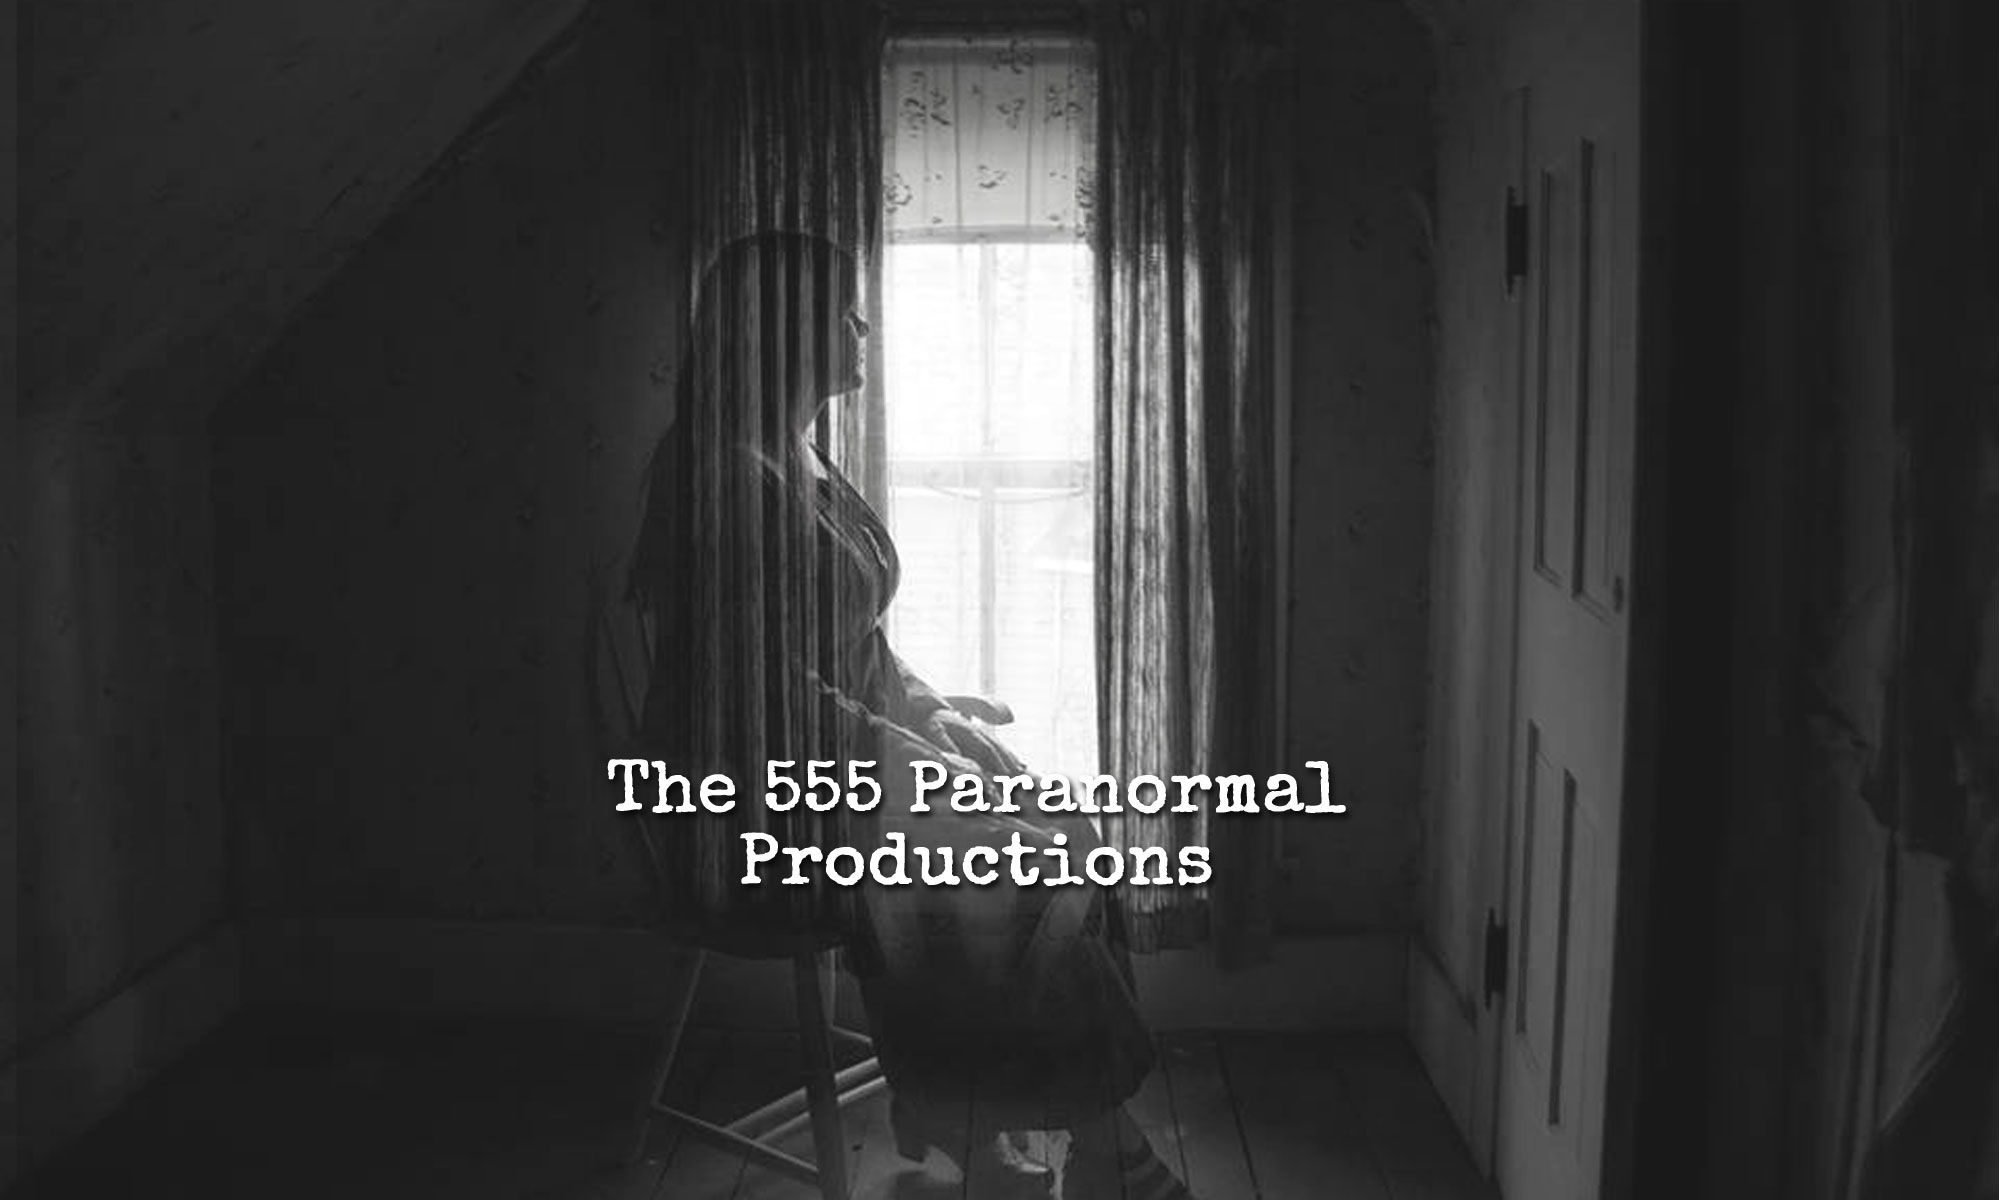 The 555 Paranormal Productions